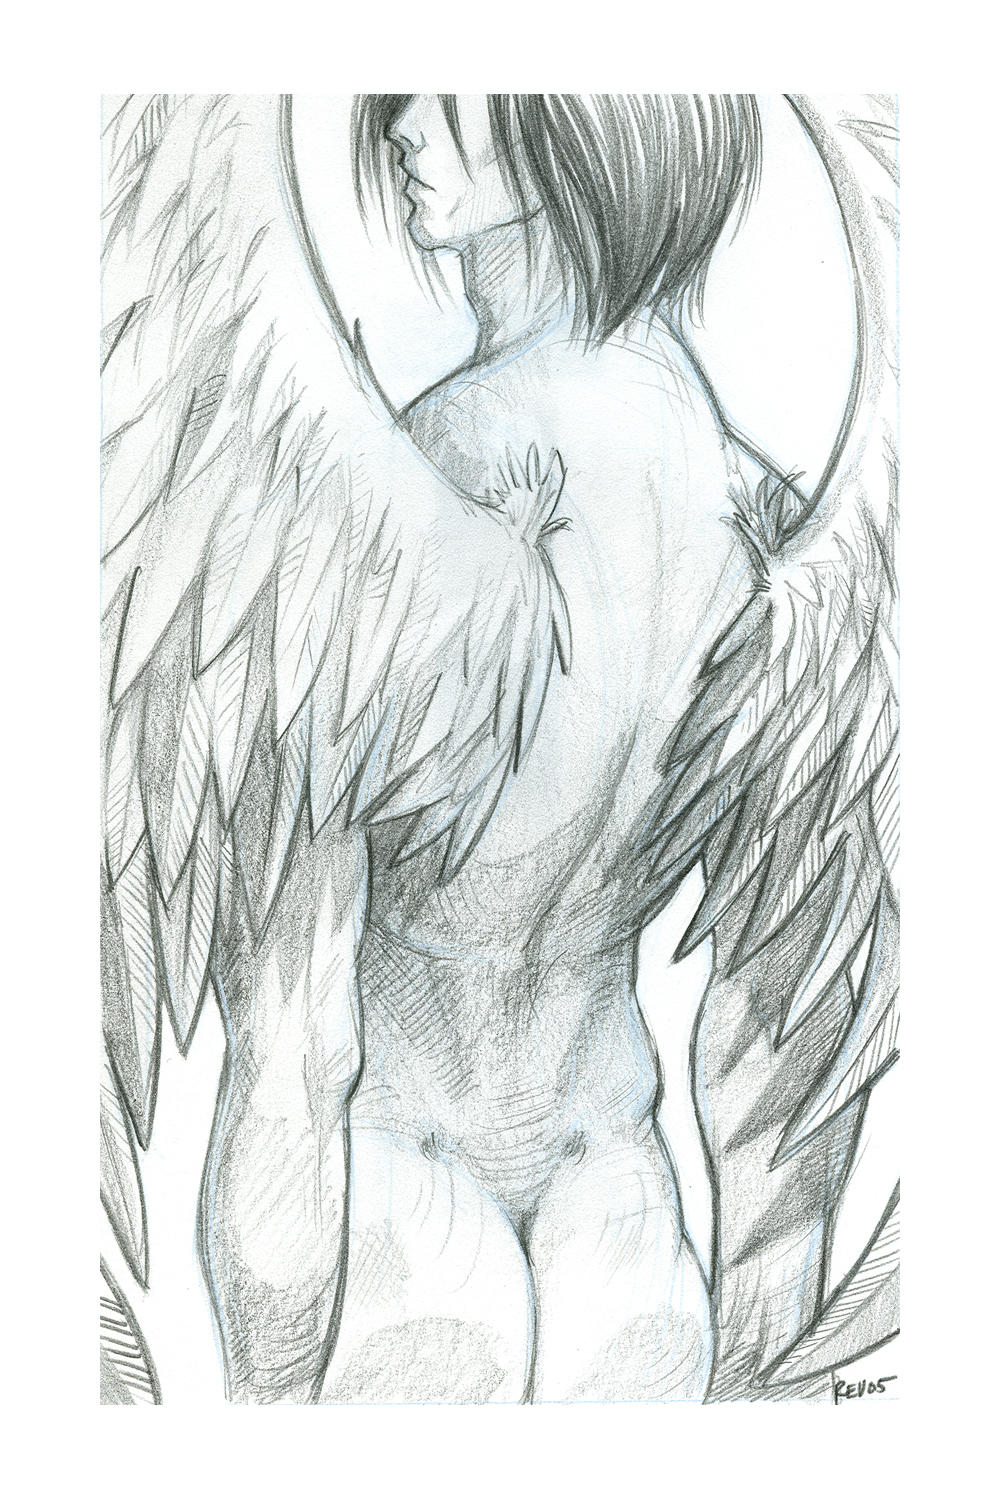 Fallen angel 2 by crimsoncrowe on deviantart fallen angel 2 by crimsoncrowe fallen angel 2 by crimsoncrowe thecheapjerseys Choice Image